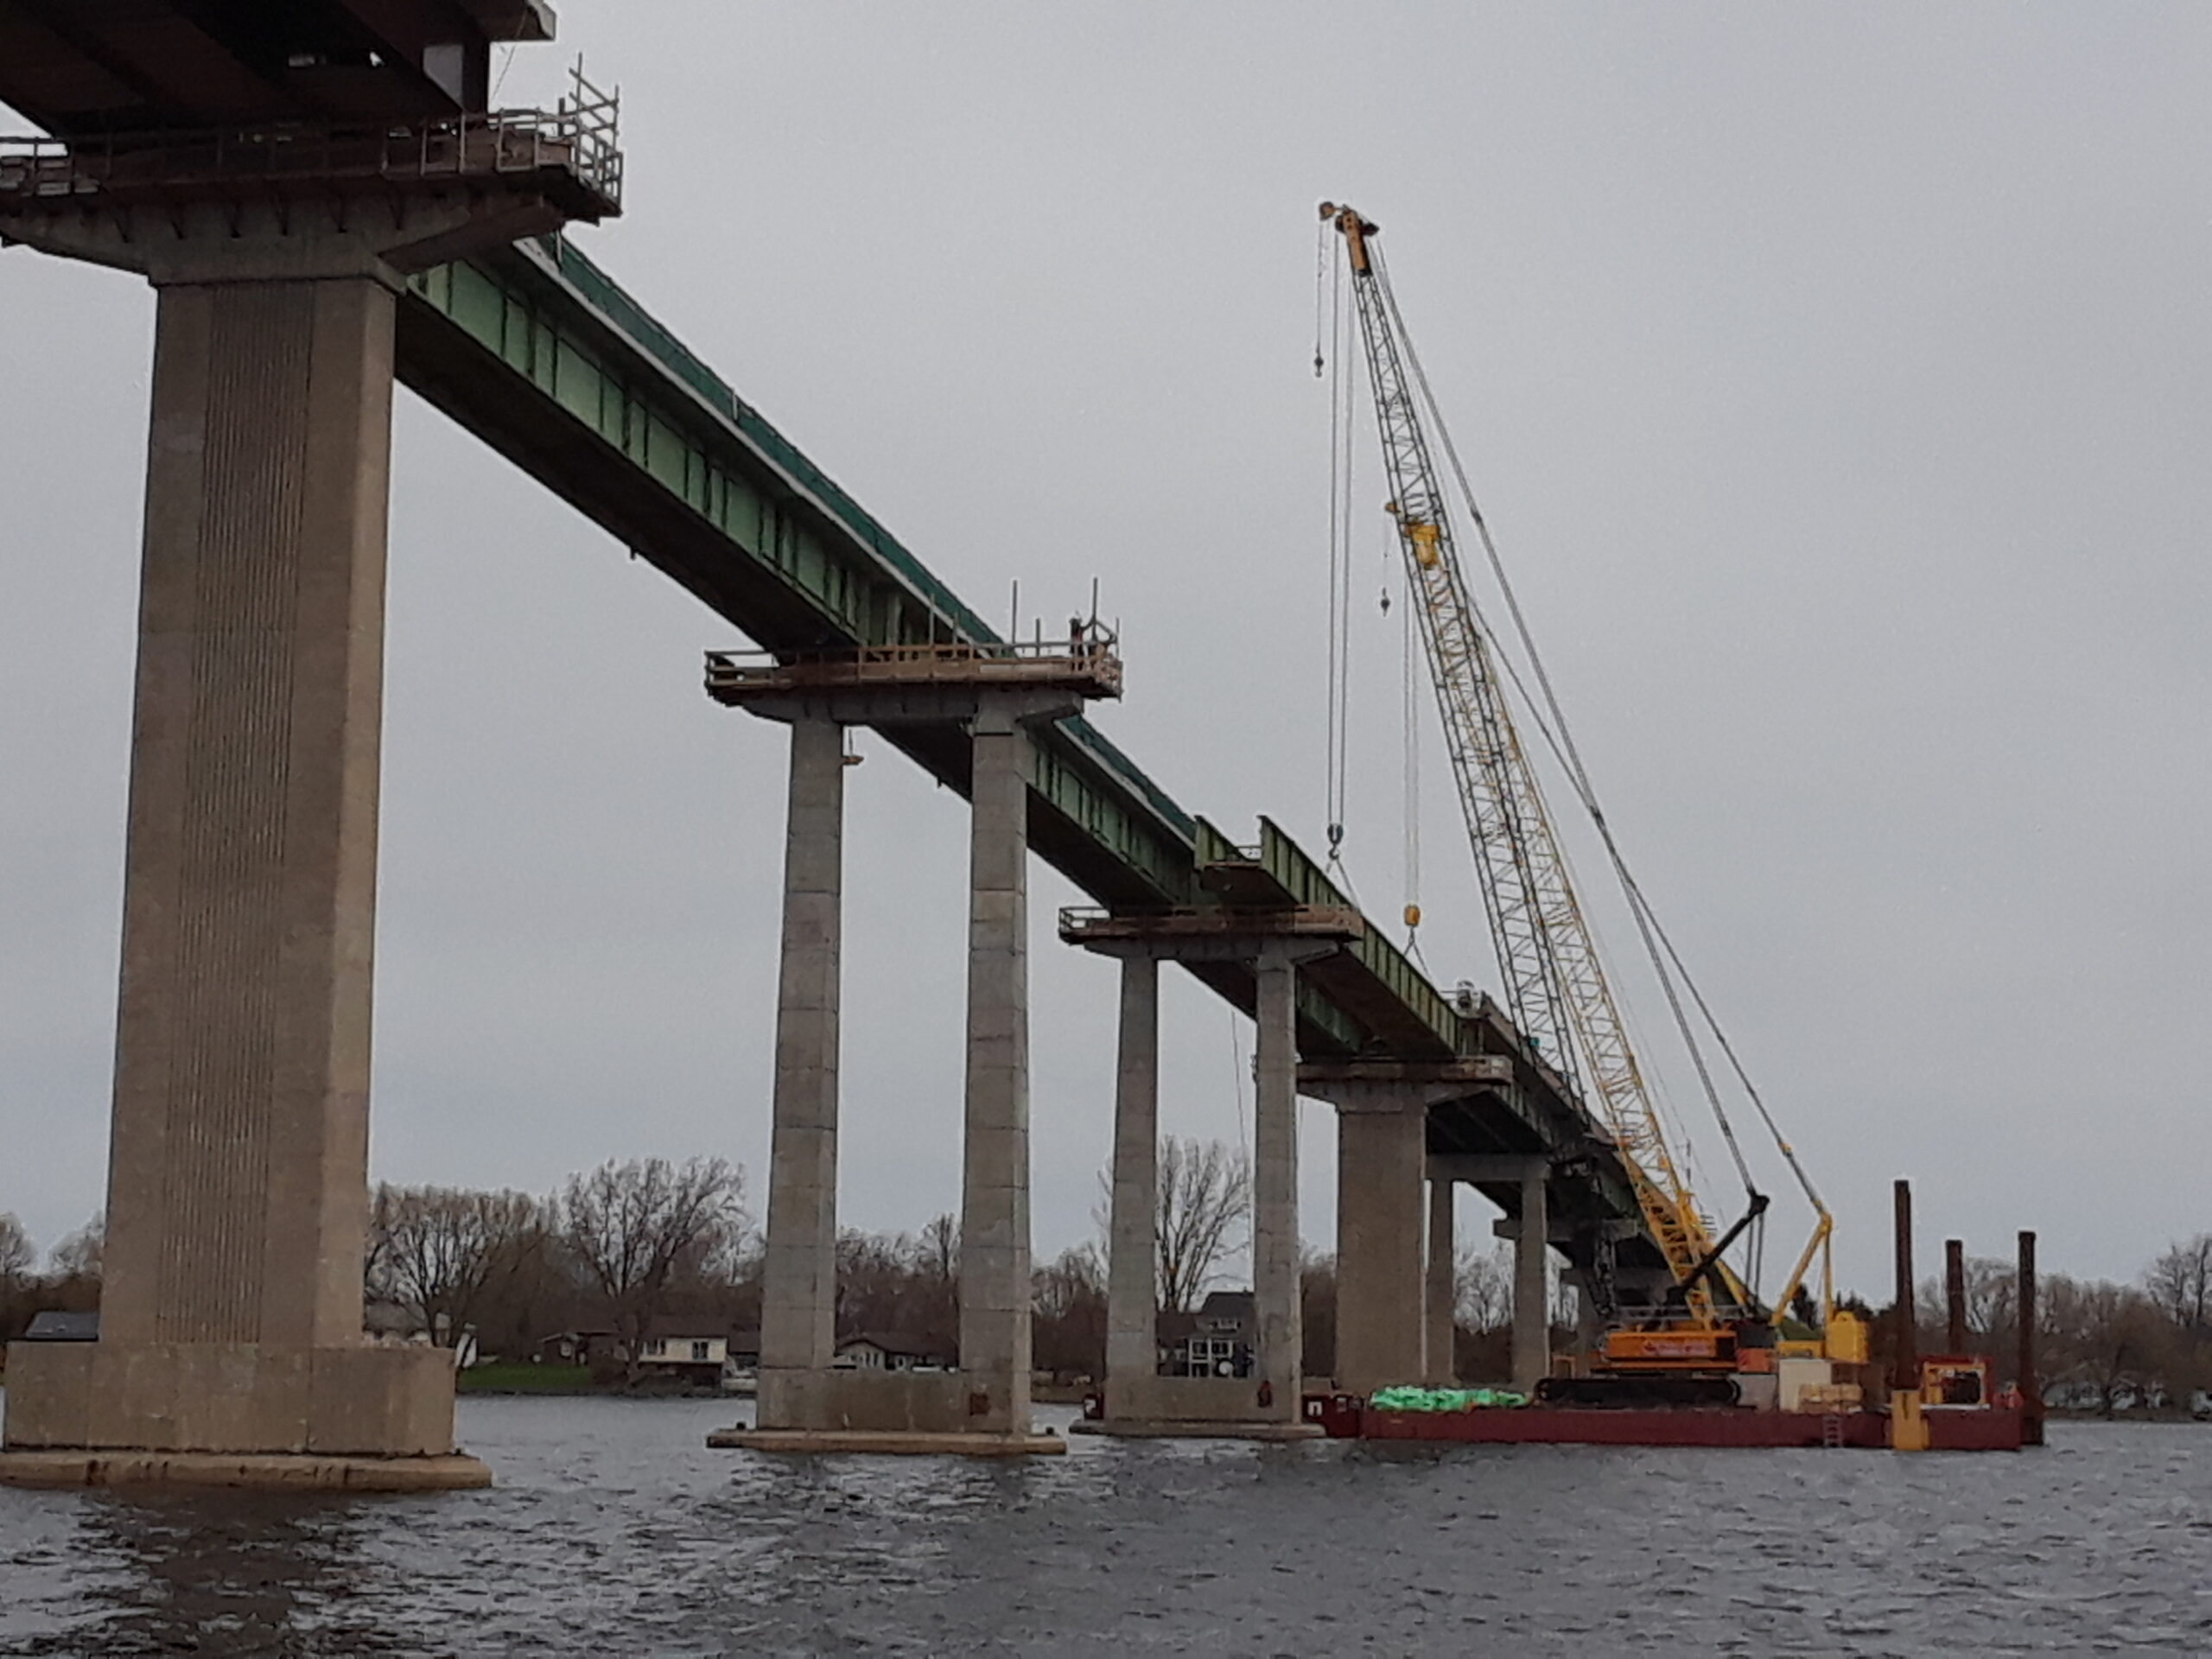 Setting up the cranes for the fourth girder removal